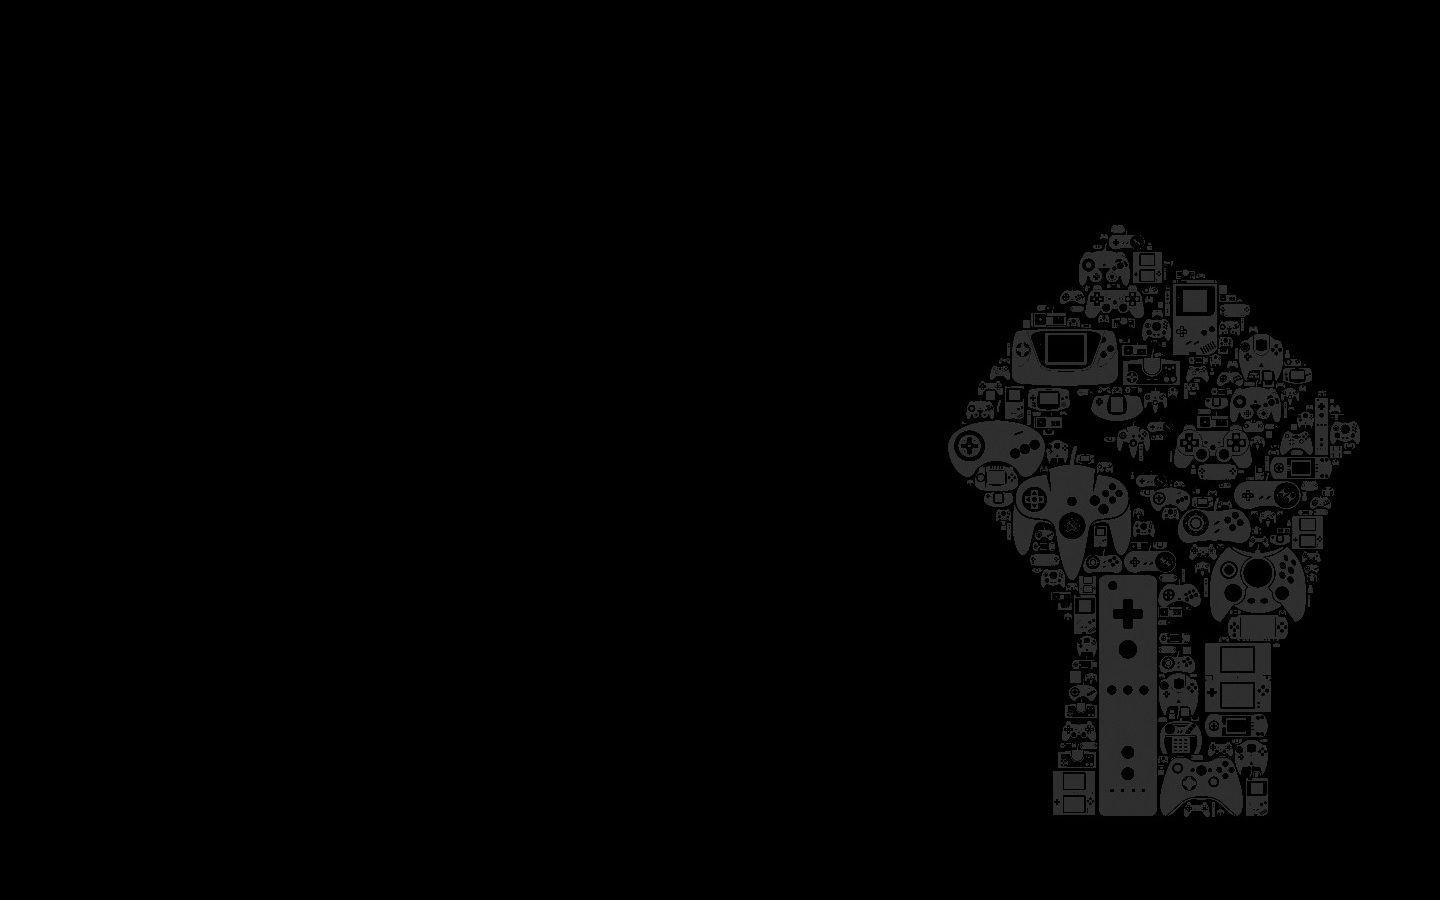 Black And White Gaming Wallpapers Top Free Black And White Gaming Backgrounds Wallpaperaccess